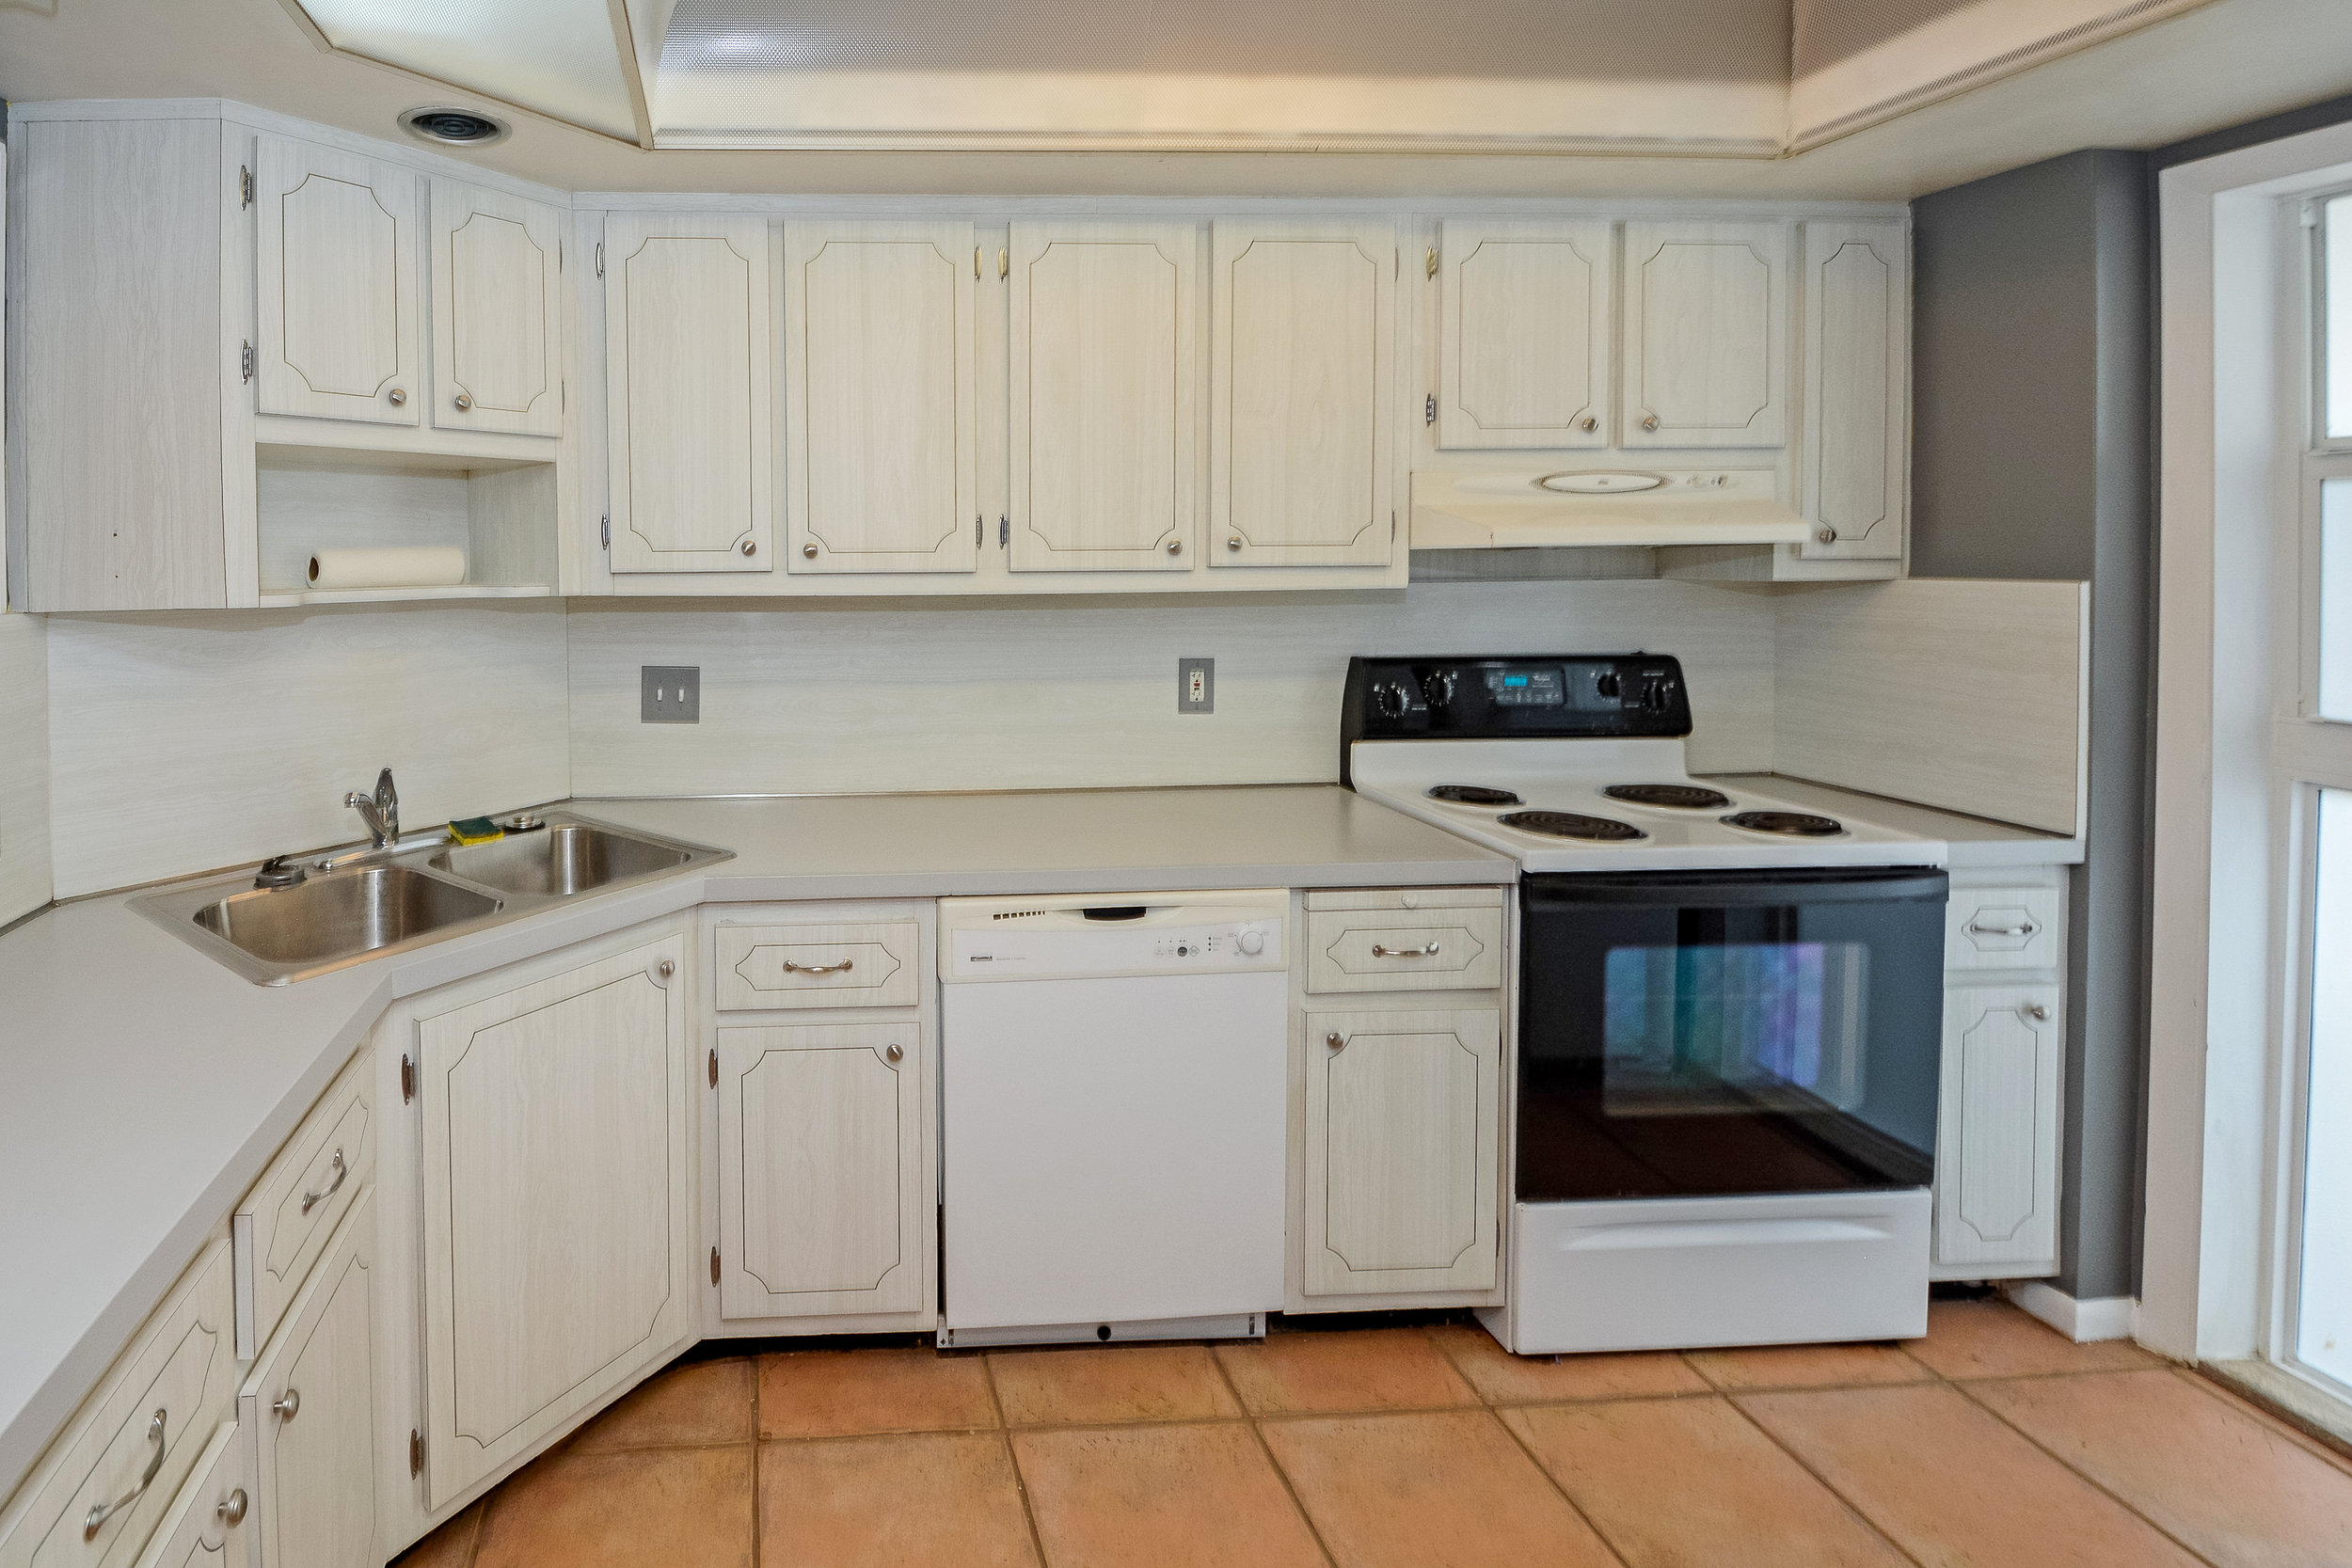 1200_sw_12th_st_217_MLS_HID1120027_ROOMkitchen1.jpg